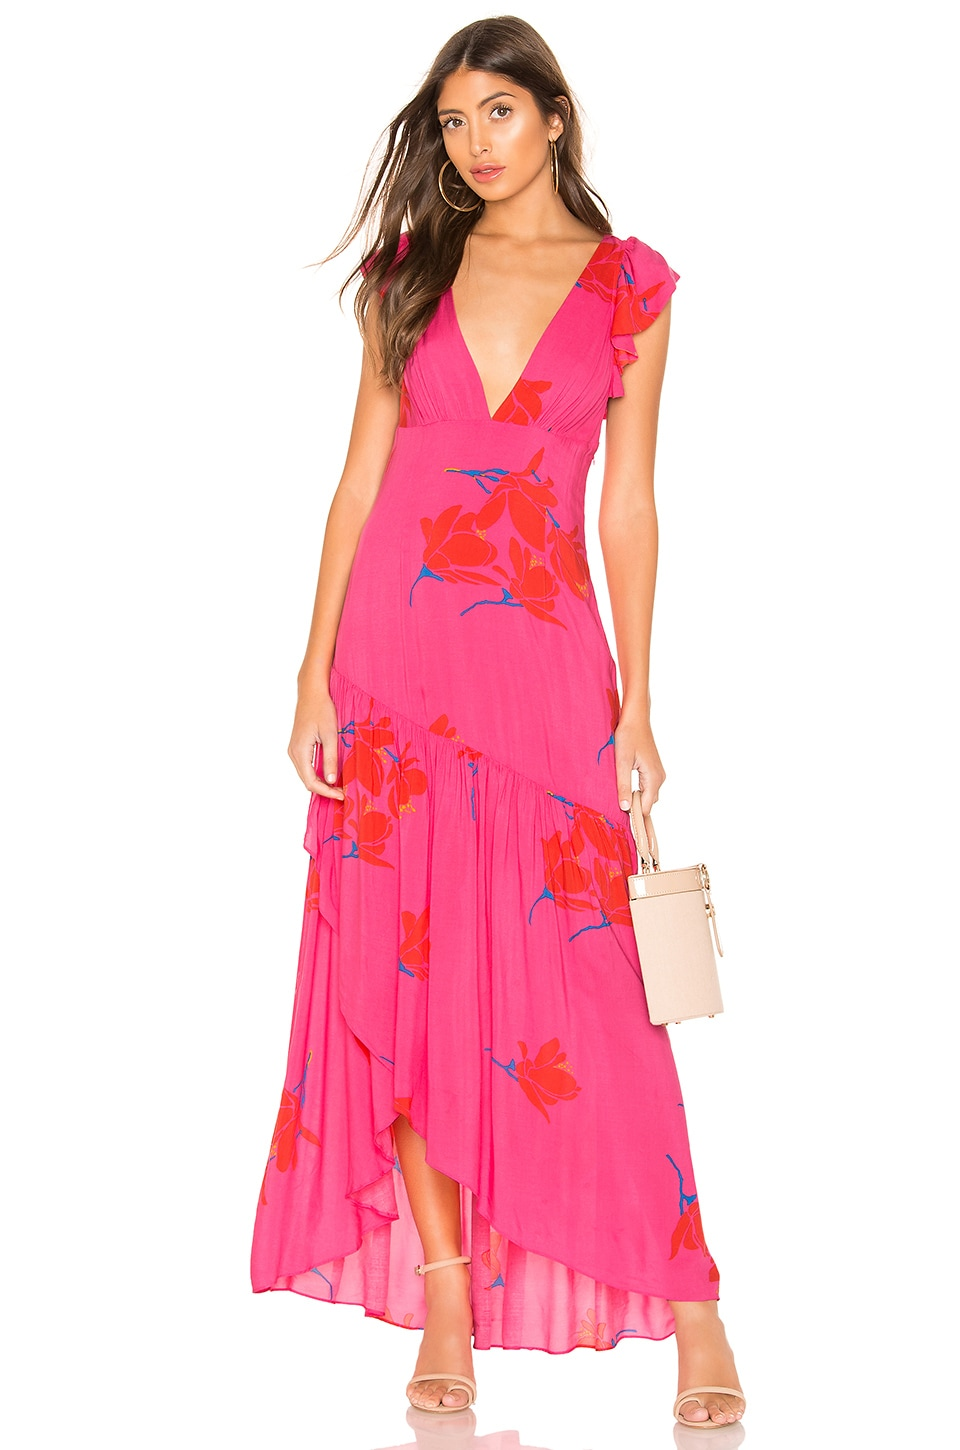 She's A Waterfall Maxi Dress             Free People                                                                                                                                         Sale price:                                                                       CA$ 99.72                                                                                                  Previous price:                                                                       CA$ 170.20 5